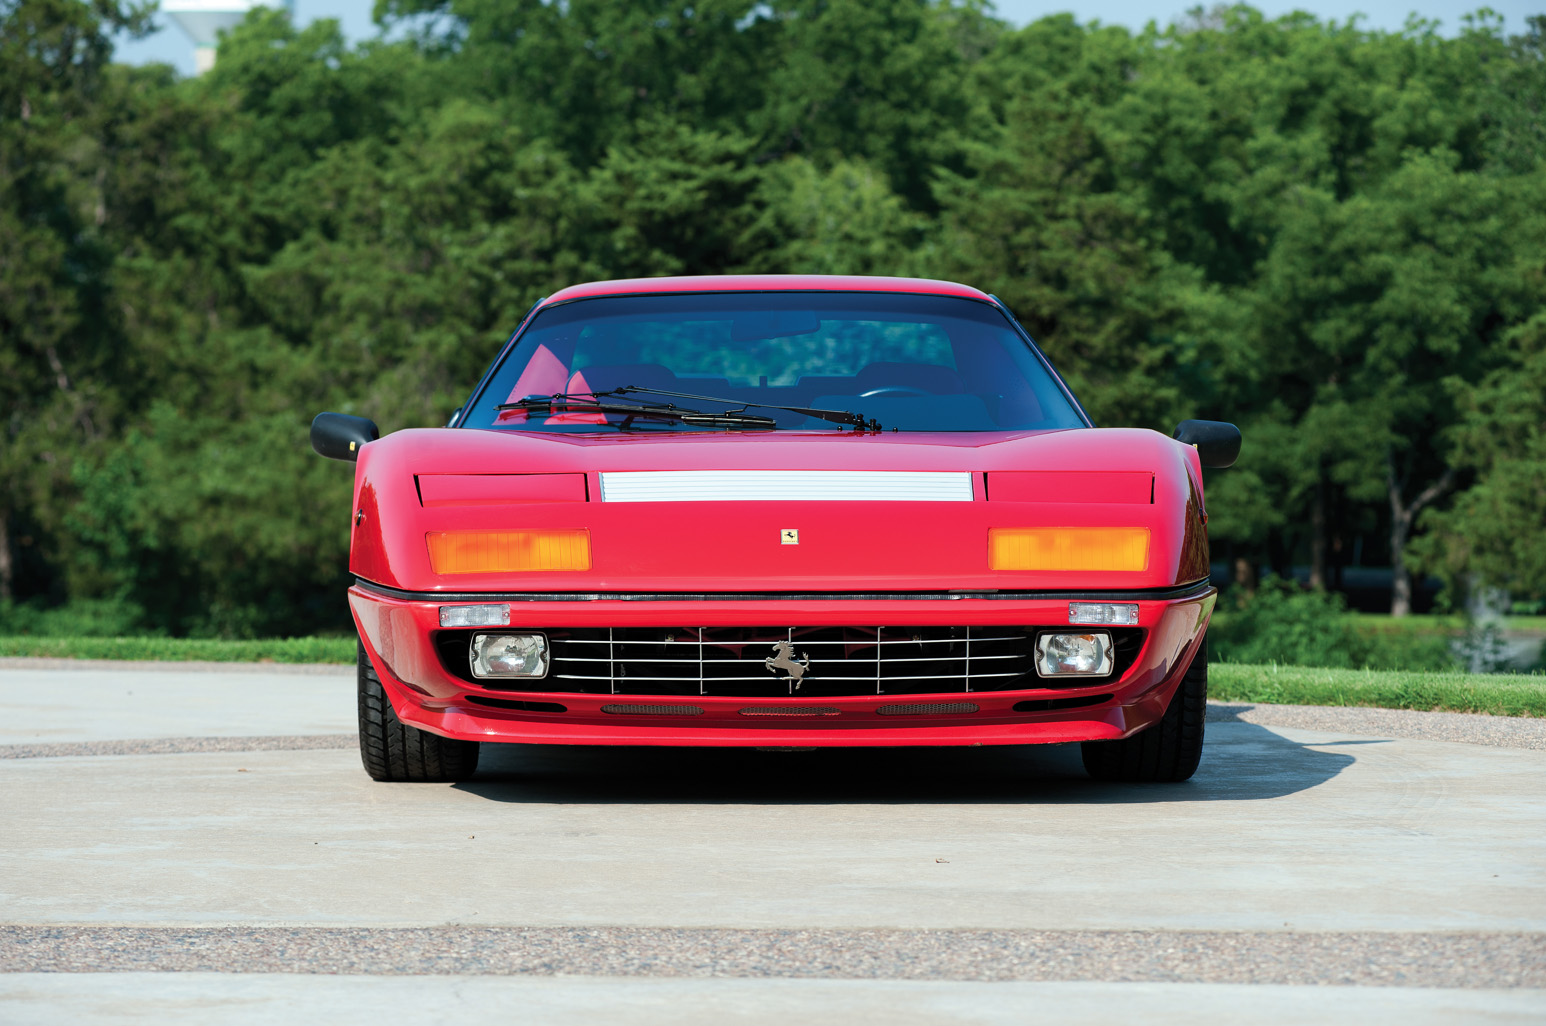 At RM Auctions, 1984 Ferrari 512 Berlinetta Boxer (image courtesy RM Auctions)